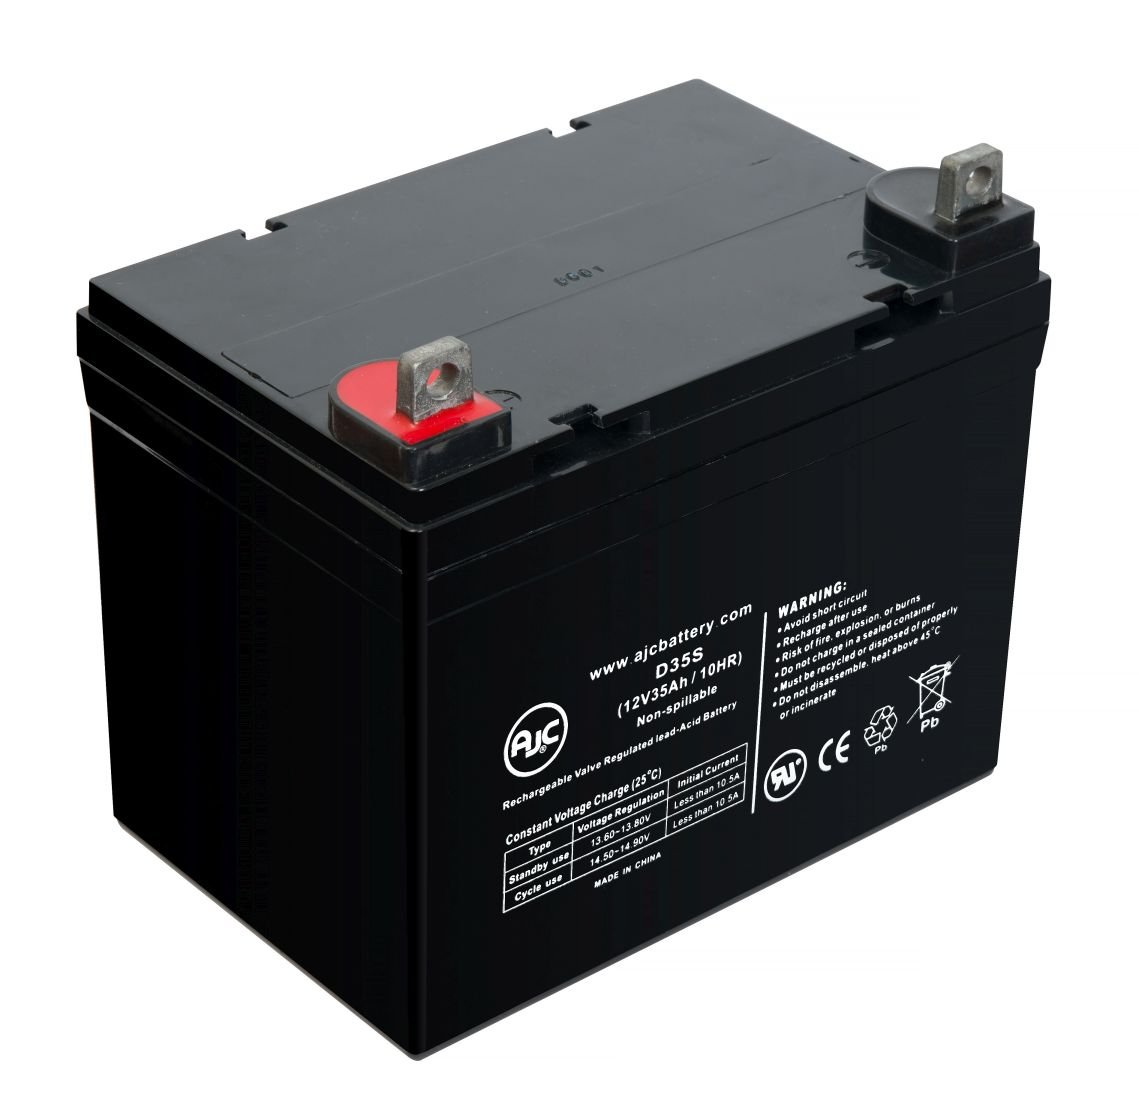 Everest & Jennings Mobie-Stand Aid 12V 35Ah Wheelchair Battery - This is an AJC Brand Replacement